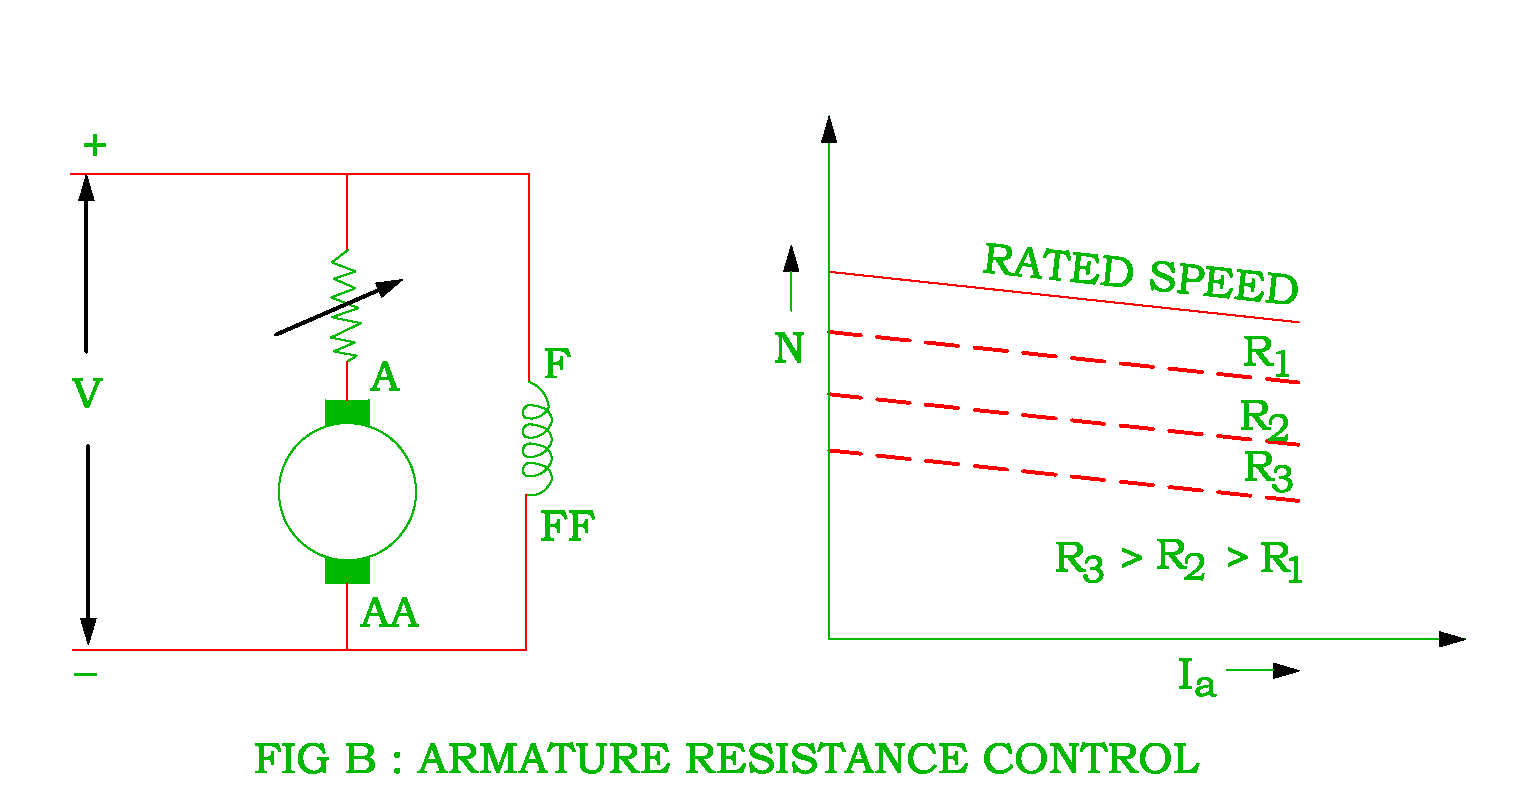 hight resolution of armature resistance control of dc shunt motor png